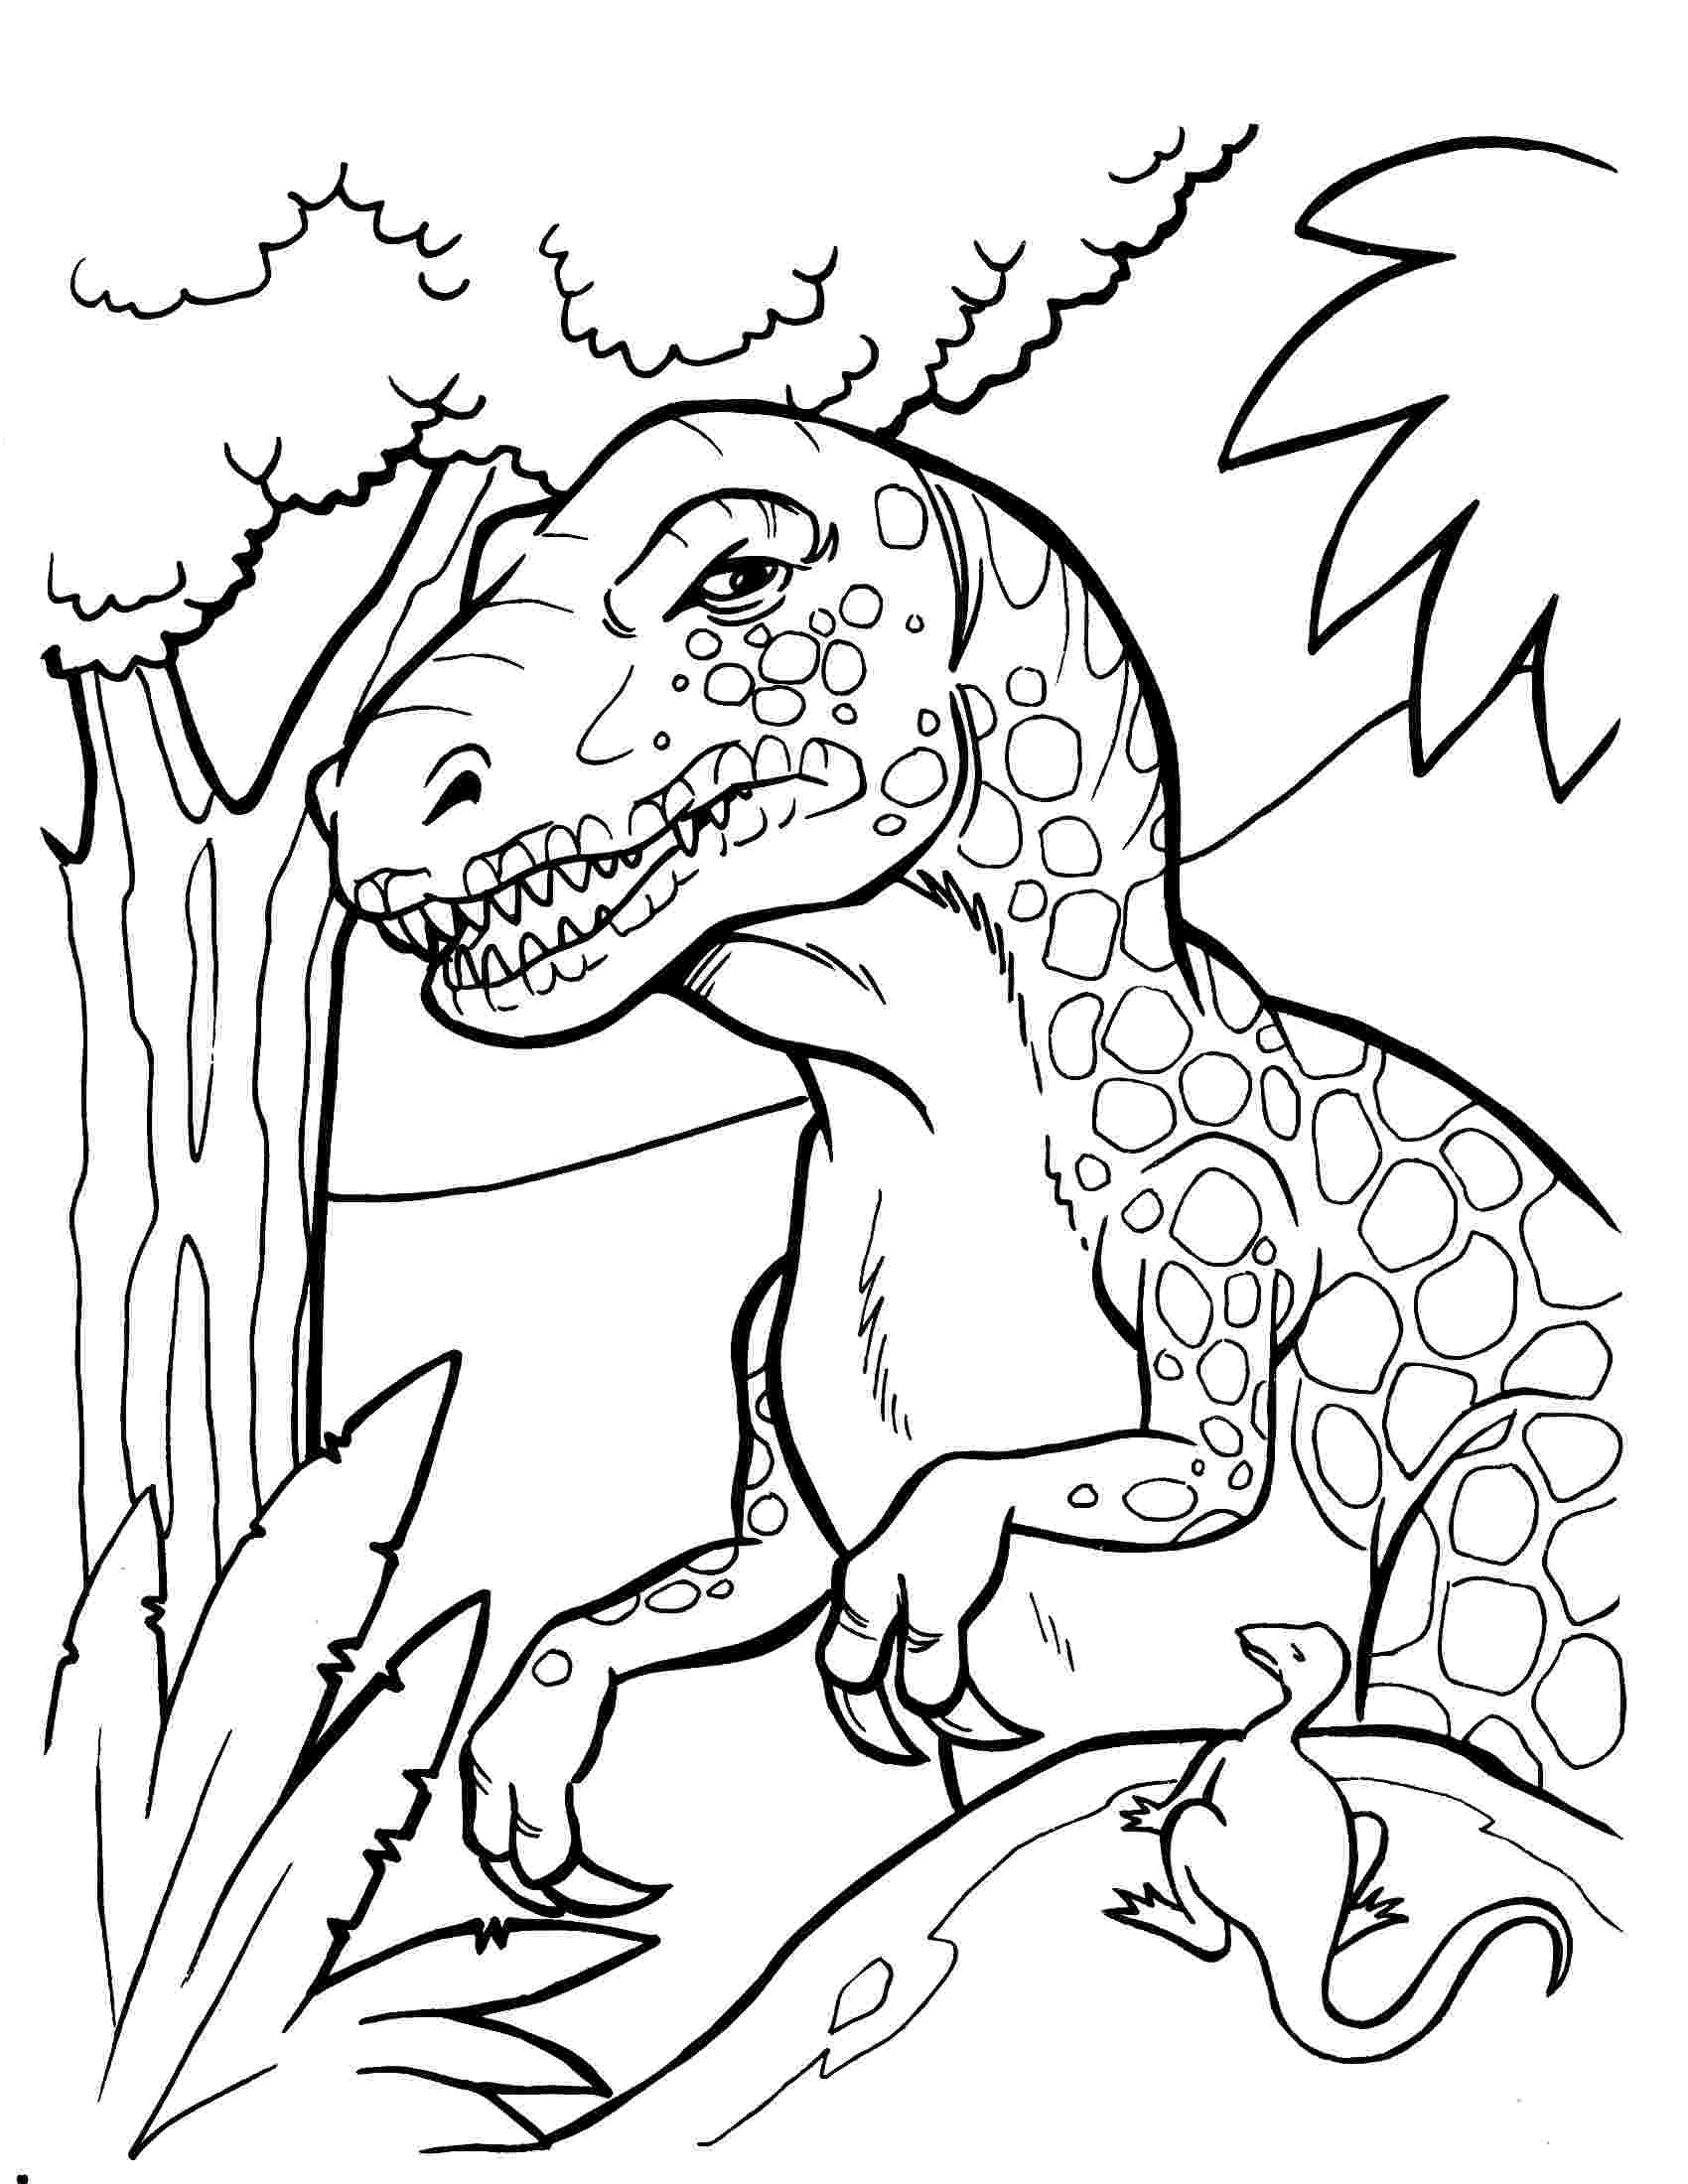 dinosaur free printable coloring pages printable dinosaur coloring pages for kids cool2bkids free dinosaur pages printable coloring